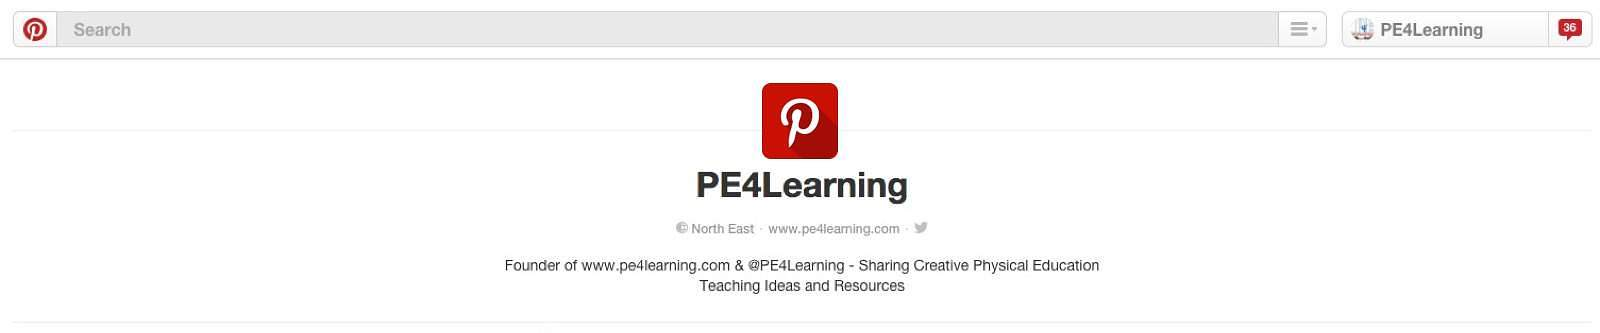 PE4Learning on Pinterest